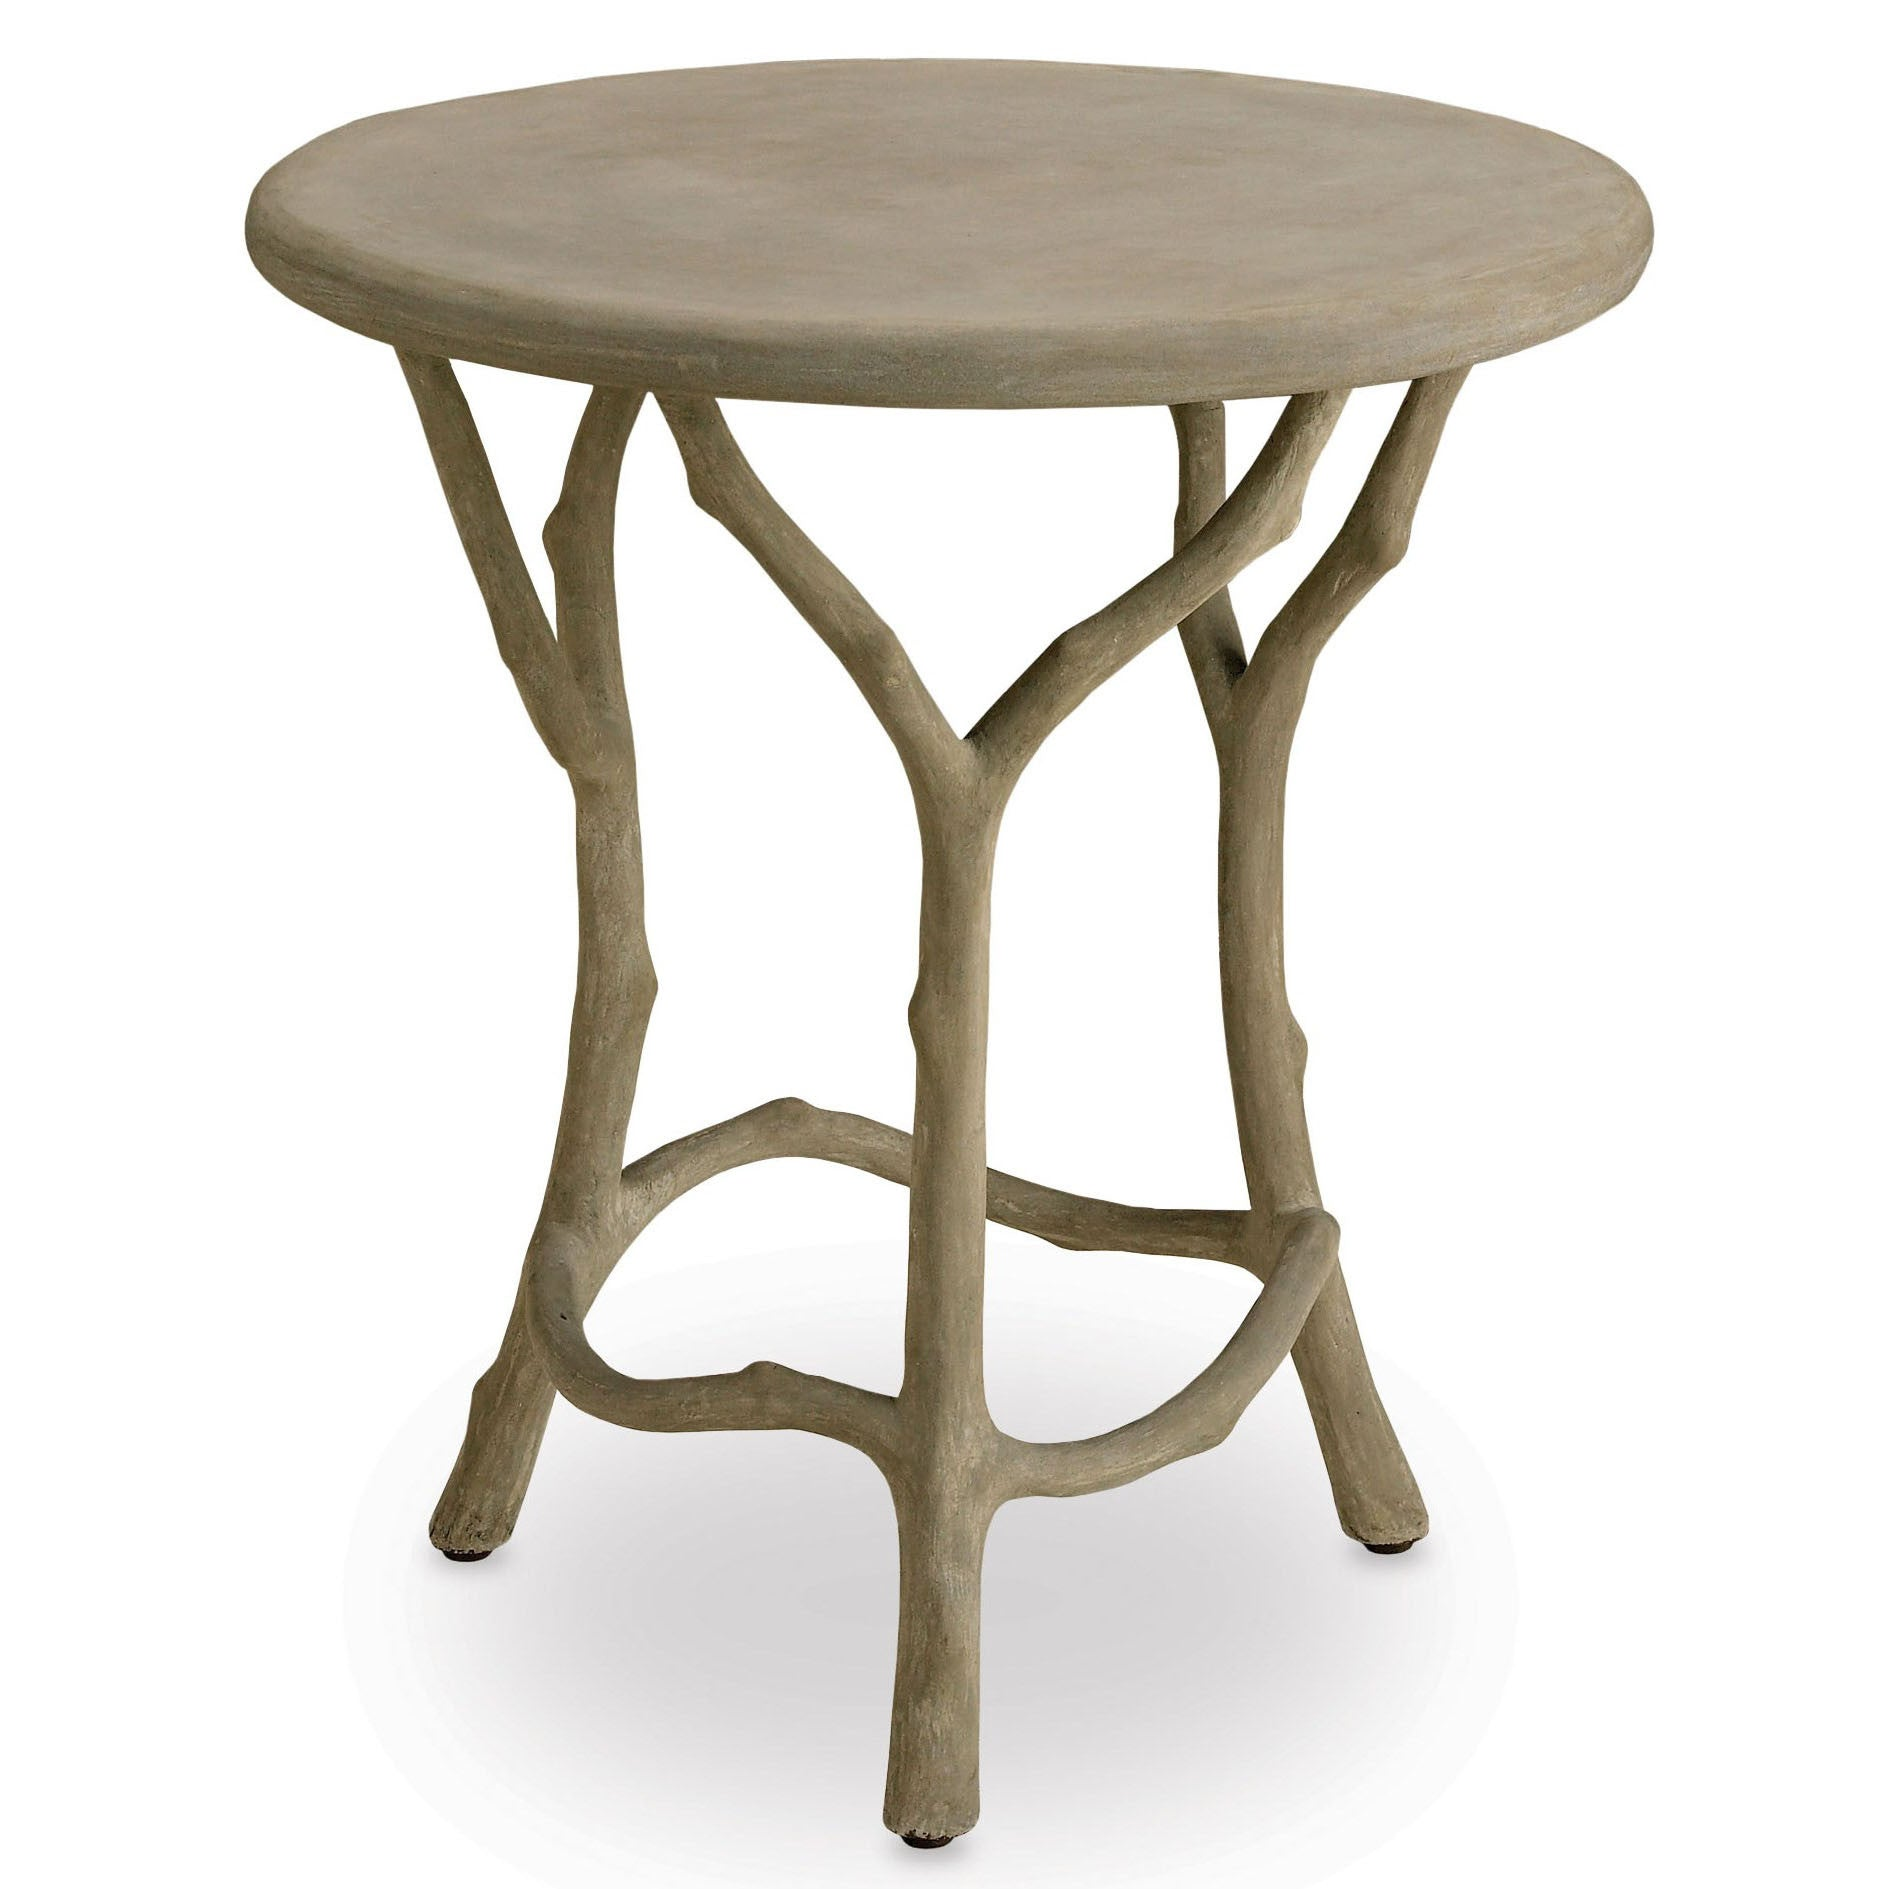 Currey and Co - Hidcote Accent Table